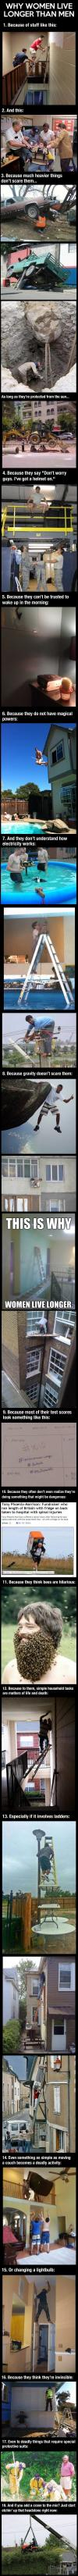 more reasons why women live longer than men, compilation, darwin awards